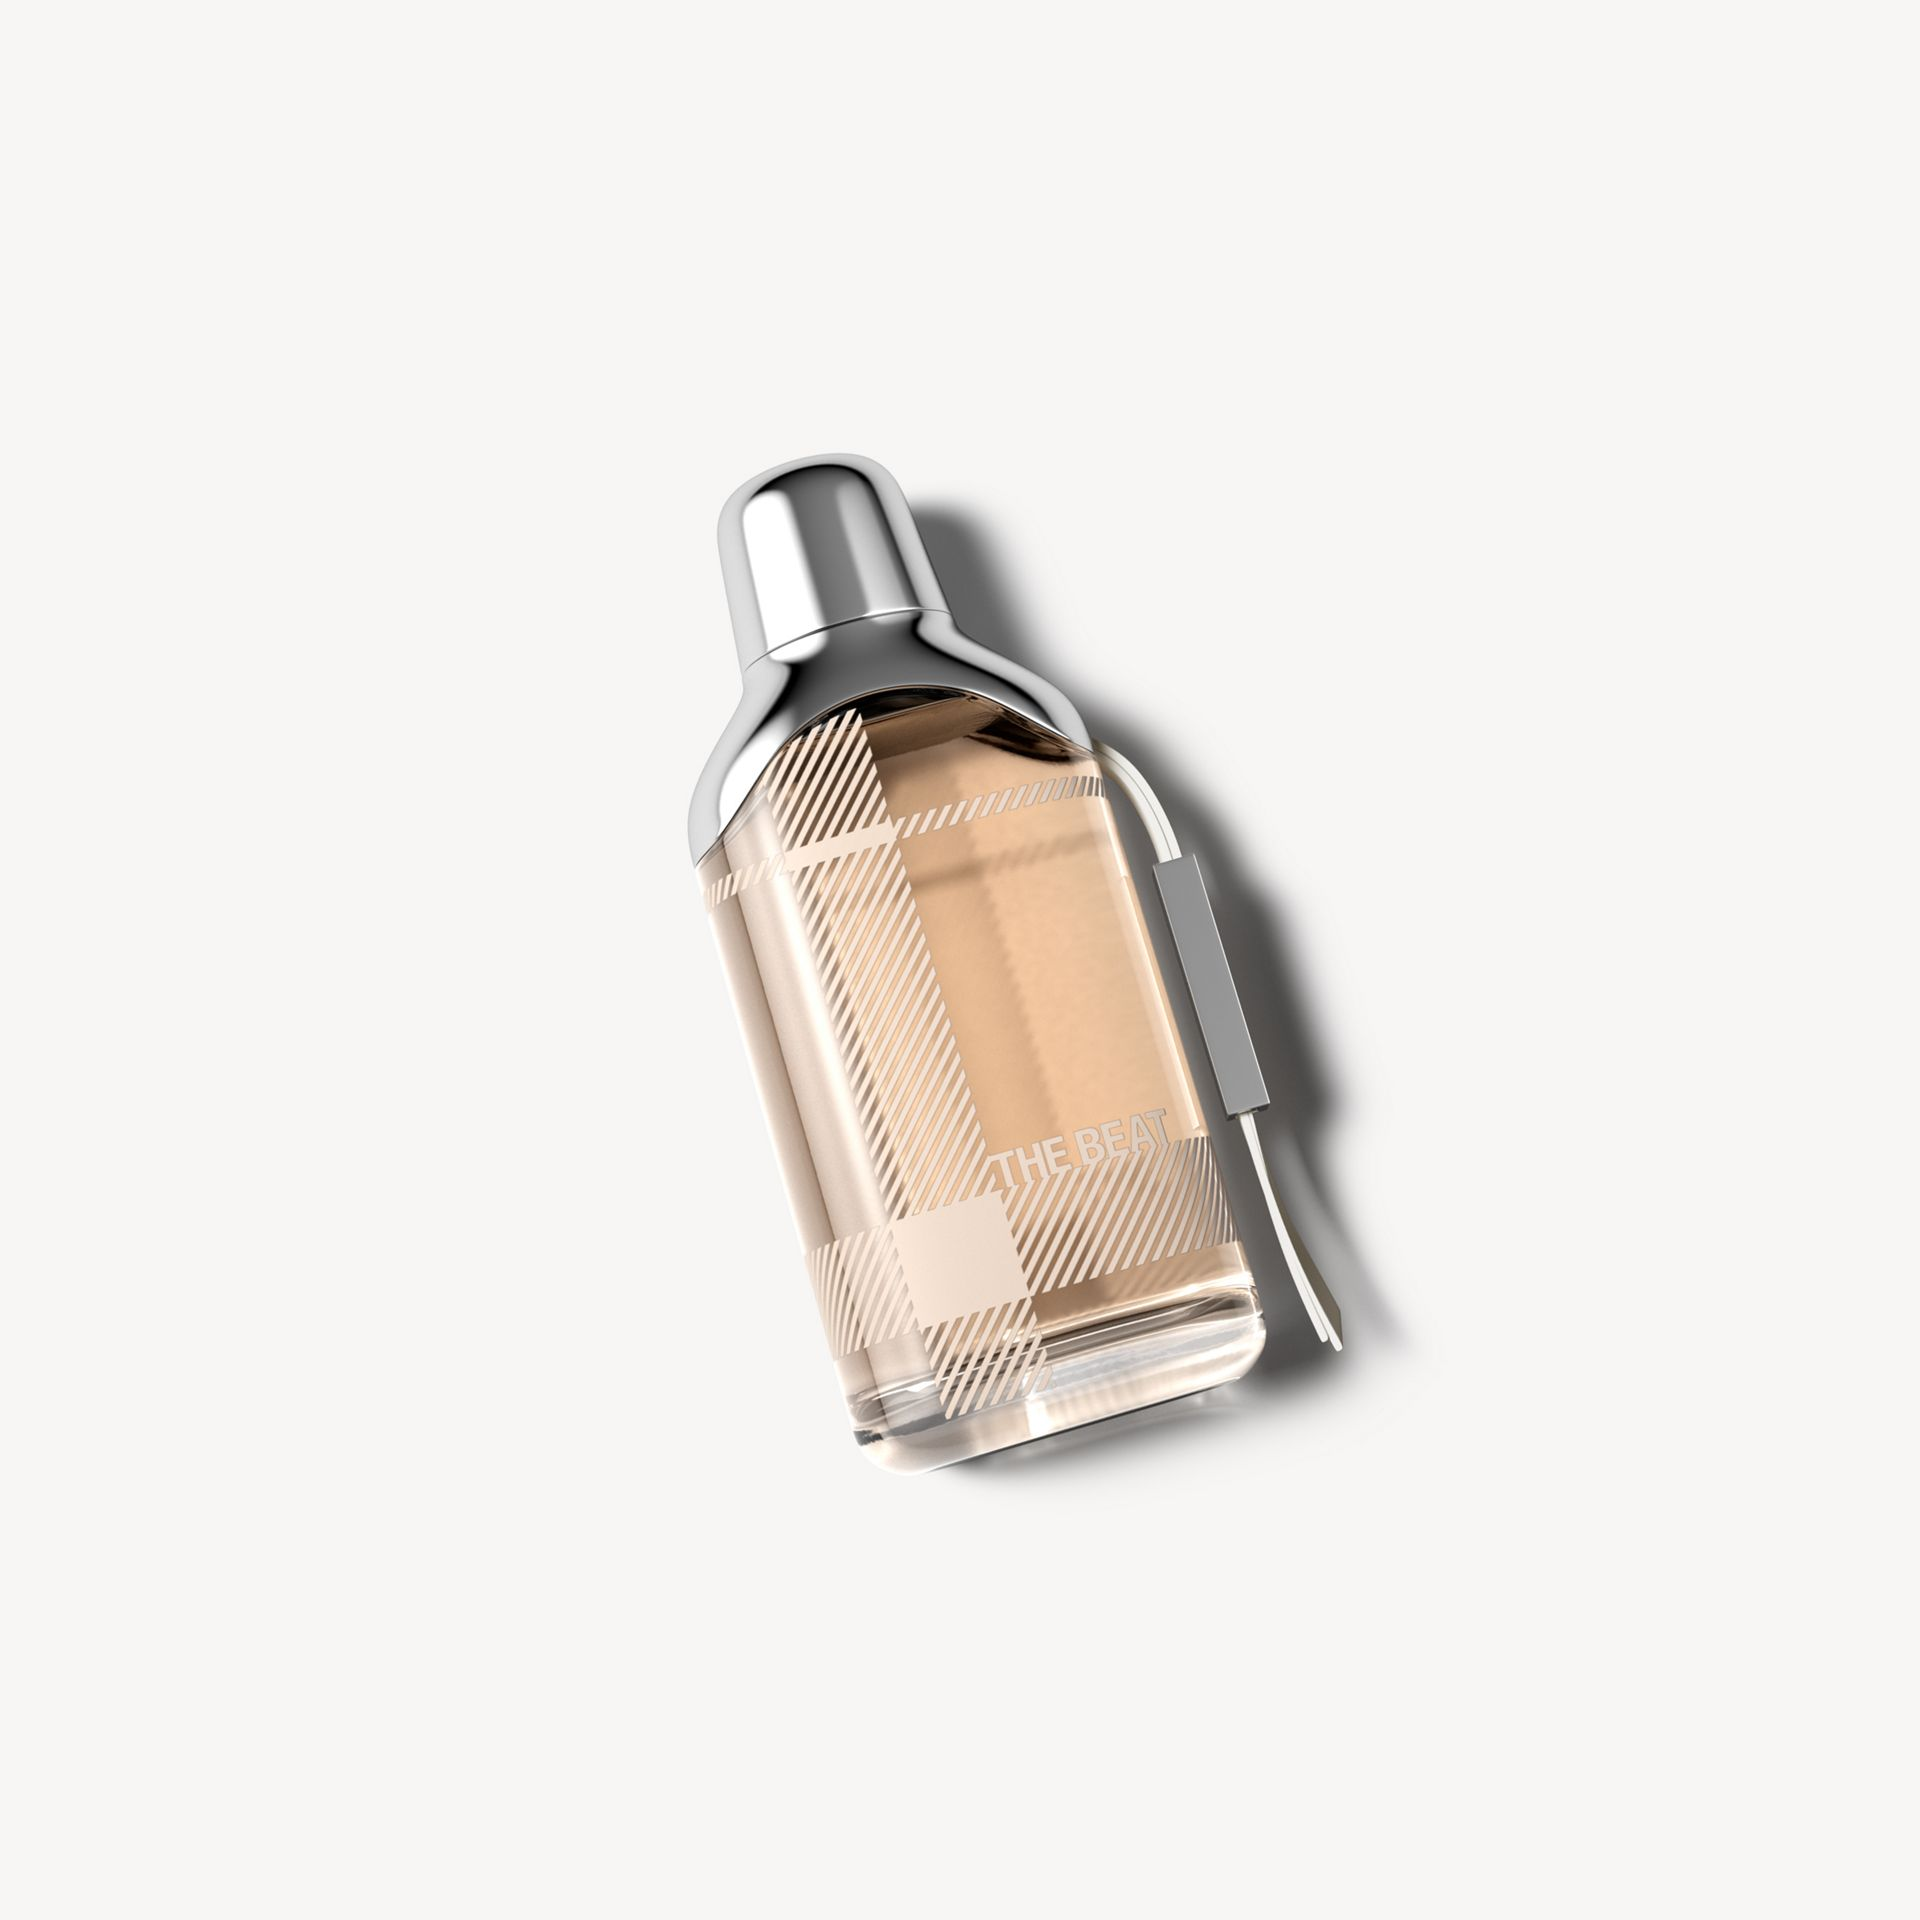 Burberry The Beat Eau de Parfum 50ml - Women | Burberry - gallery image 1